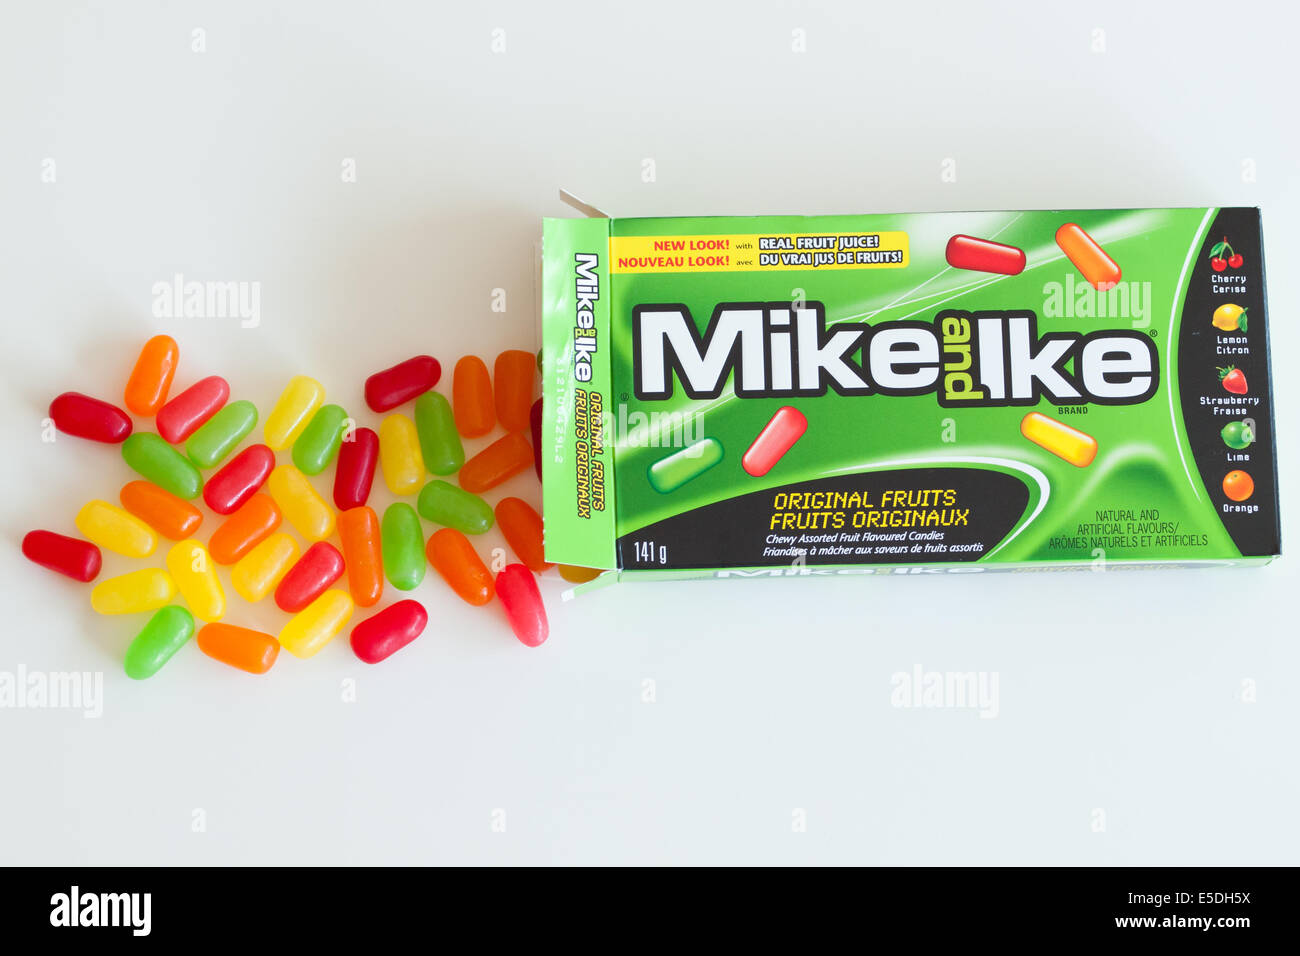 A box of Mike and Ike candy.  Original Fruits variety is shown. - Stock Image